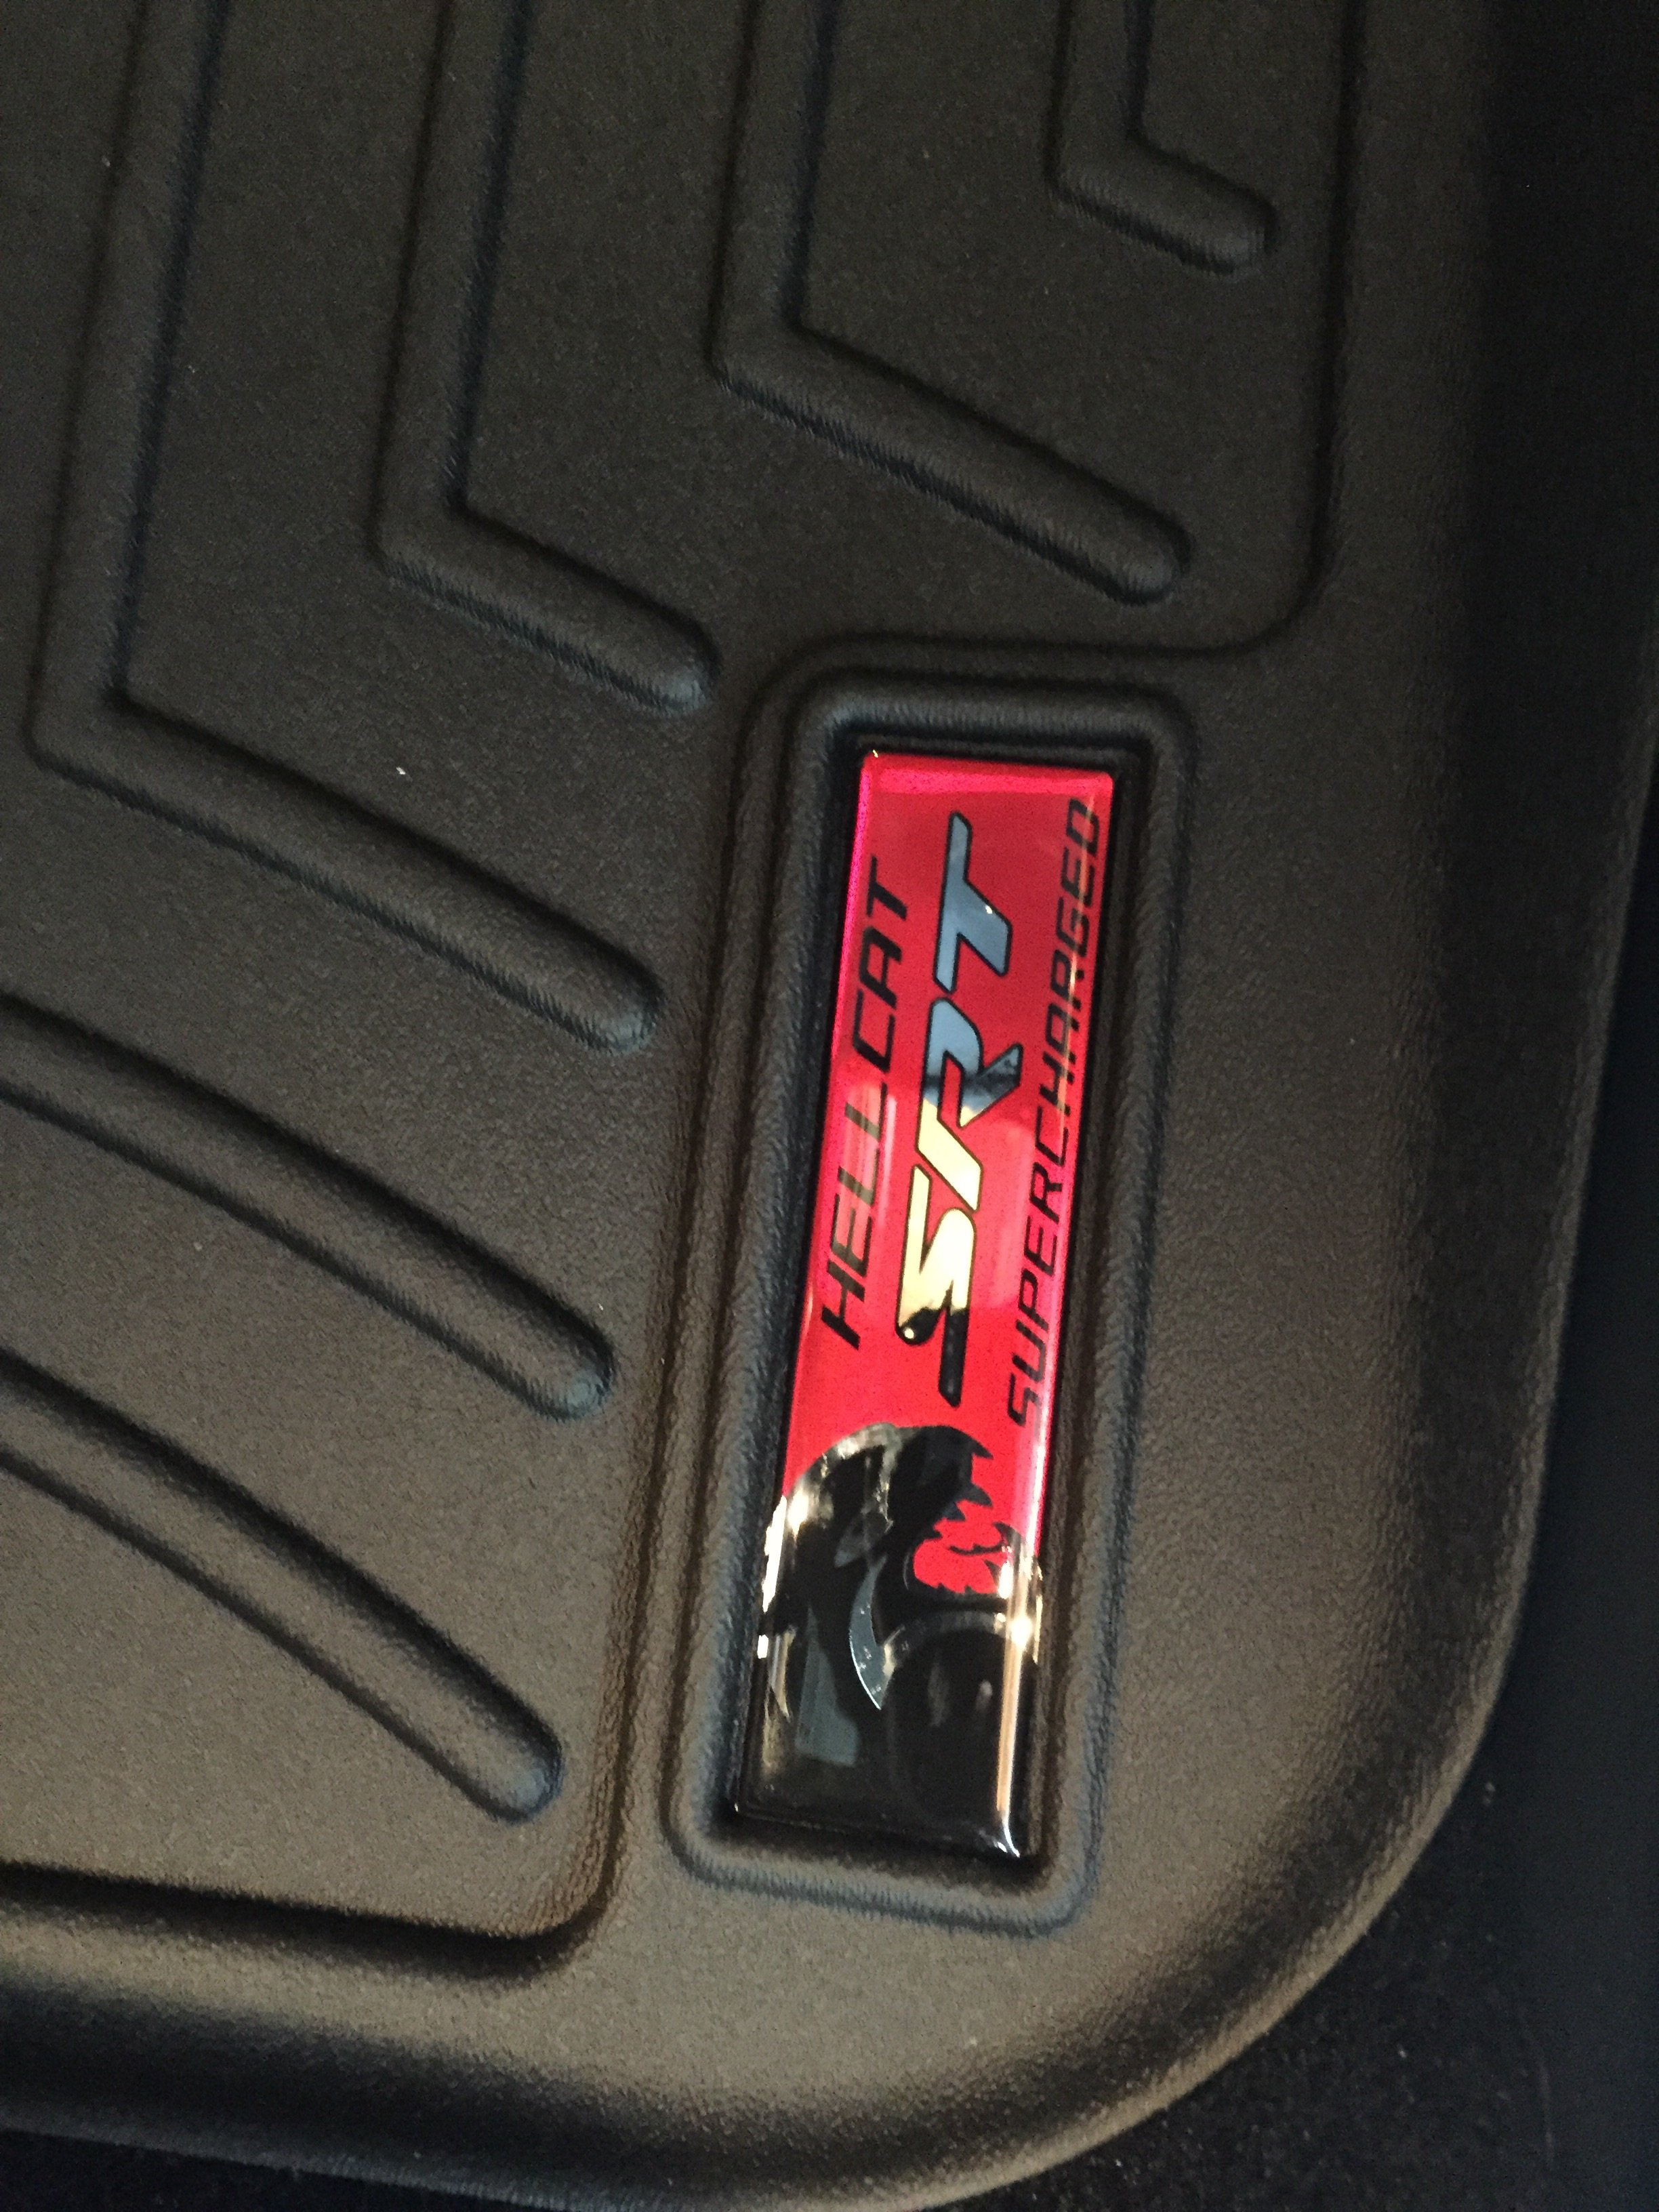 Dodge Hellcat 2016 >> What floor mats did you get? Husky or Weathertech? | SRT Hellcat Forum